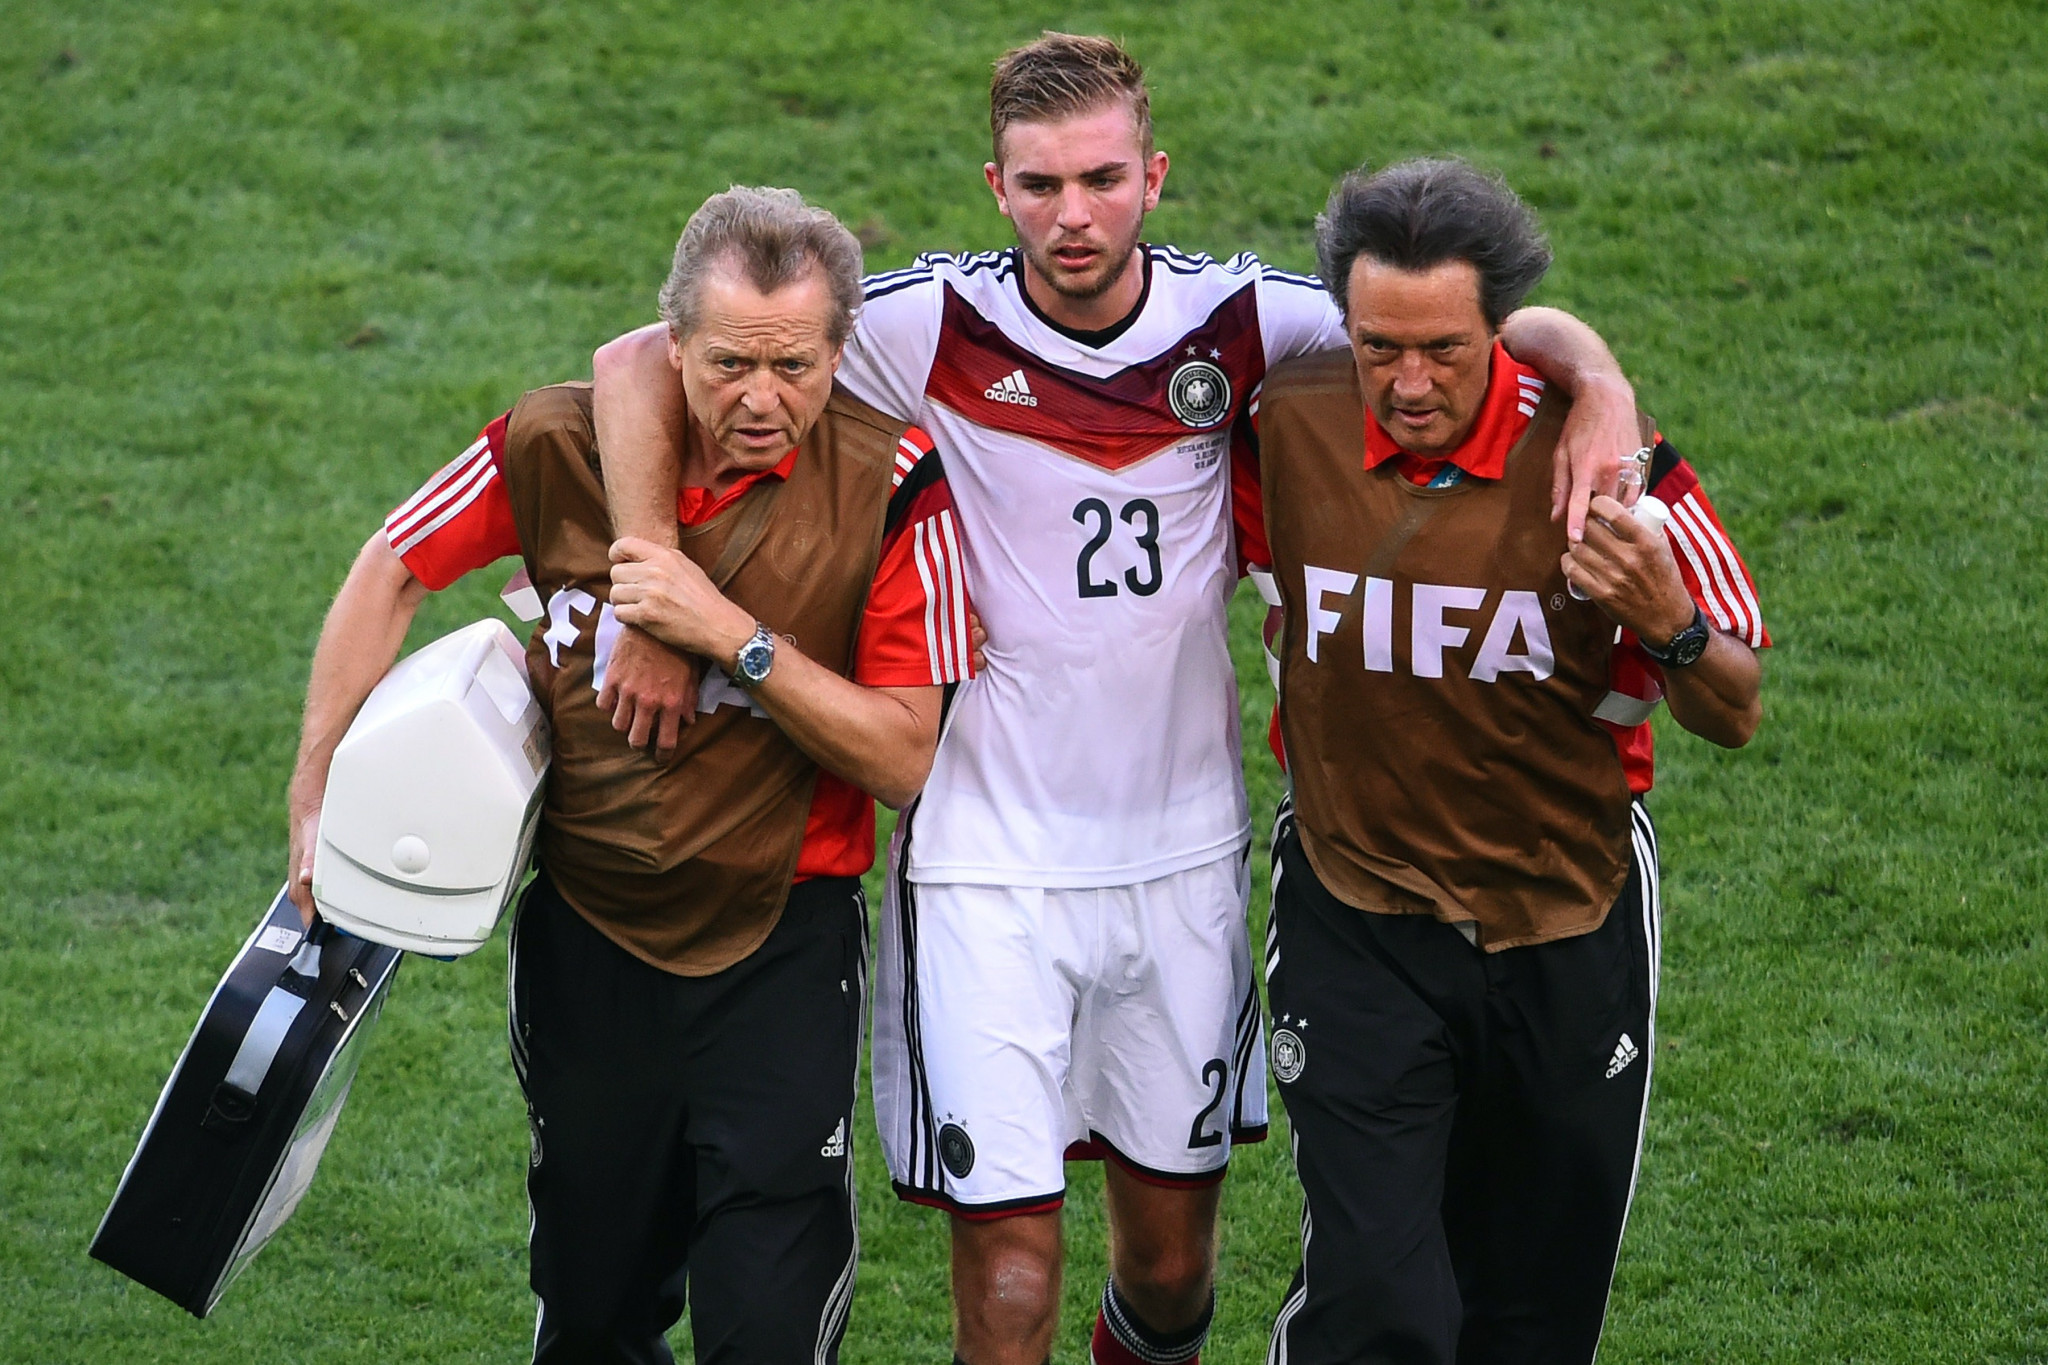 After suffering a head injury in the 2014 FIFA World Cup final - and asking the referee if it was indeed the final, as he was dazed - Germany's Christoph Kramer was allowed to play on for fourteen minutes before collapsing and only then being taken off  ©Getty Images